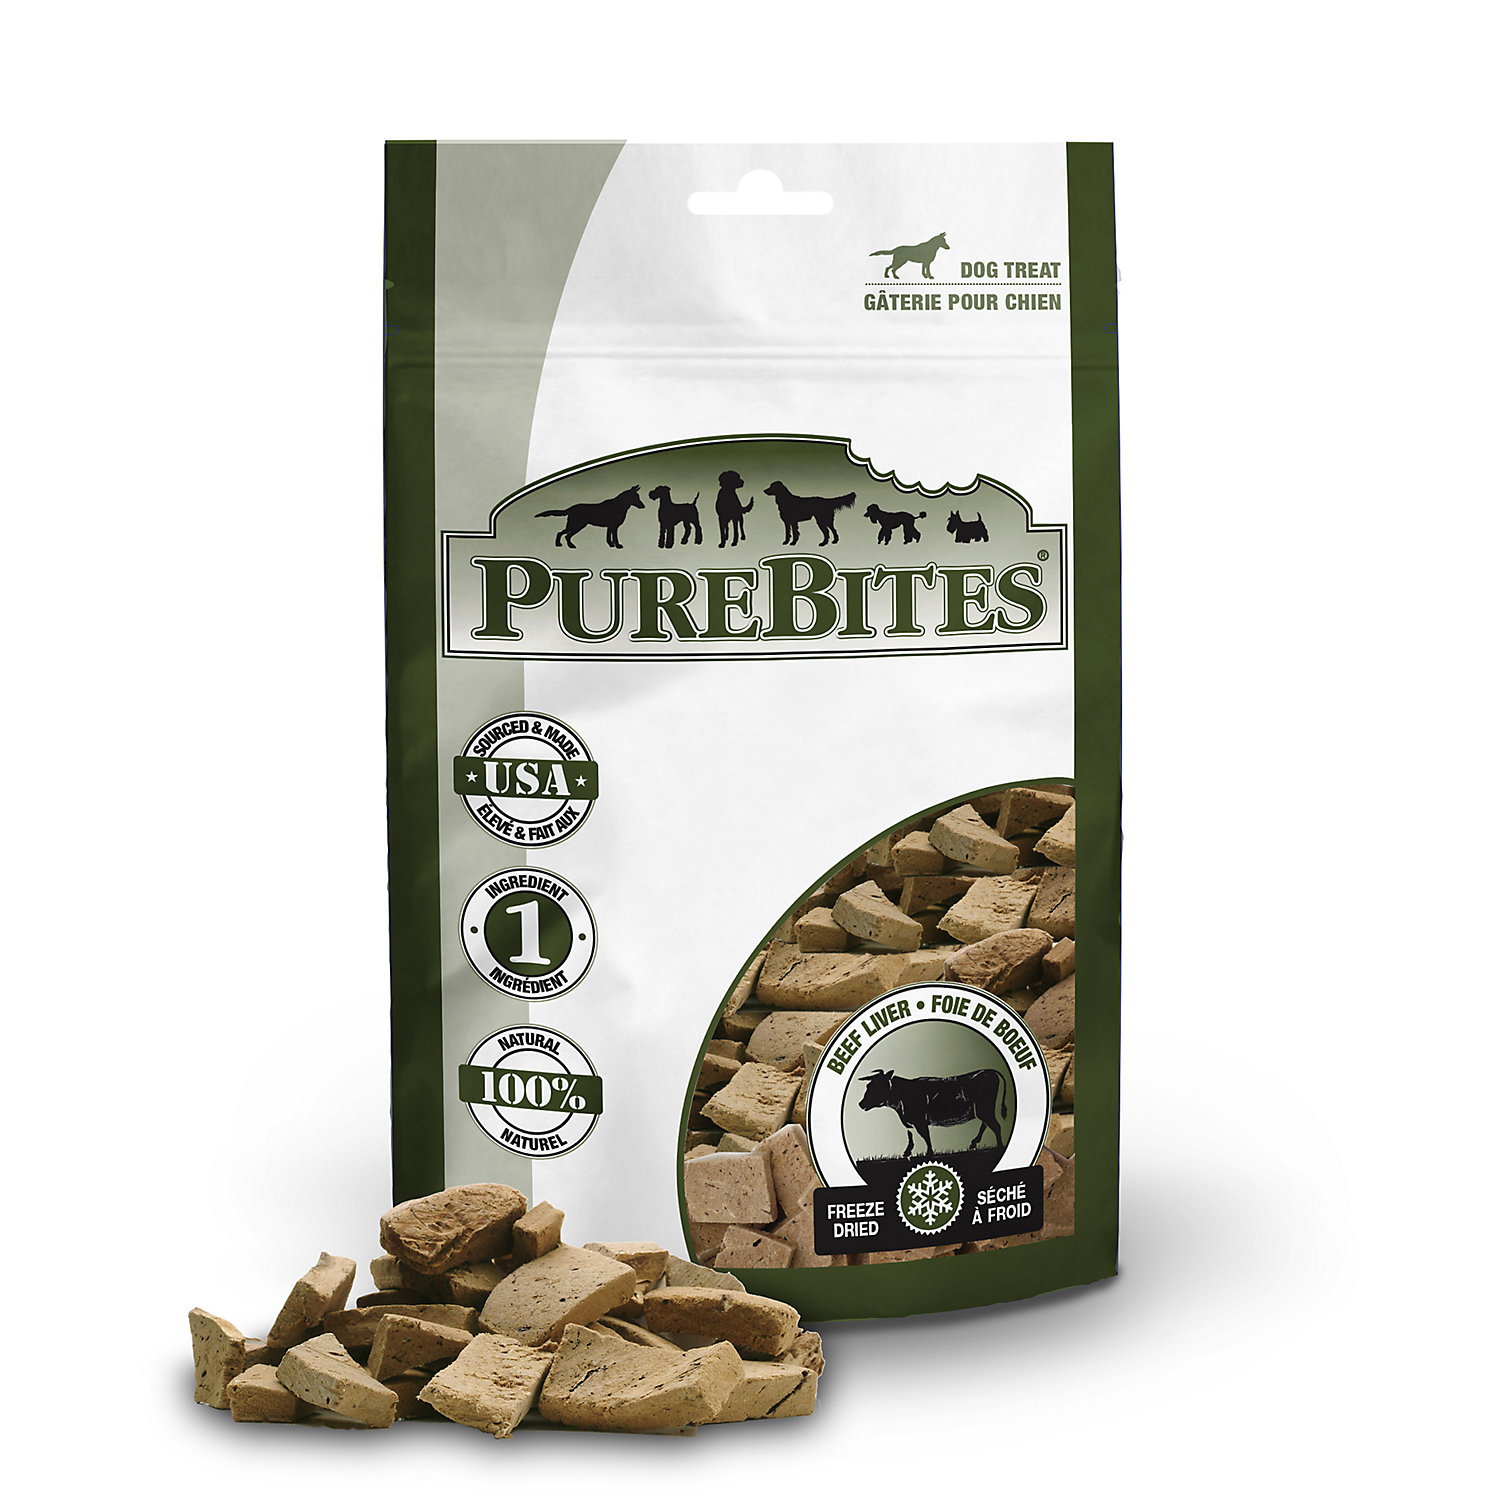 Image of Pure Bites Beef Liver Dog Treats